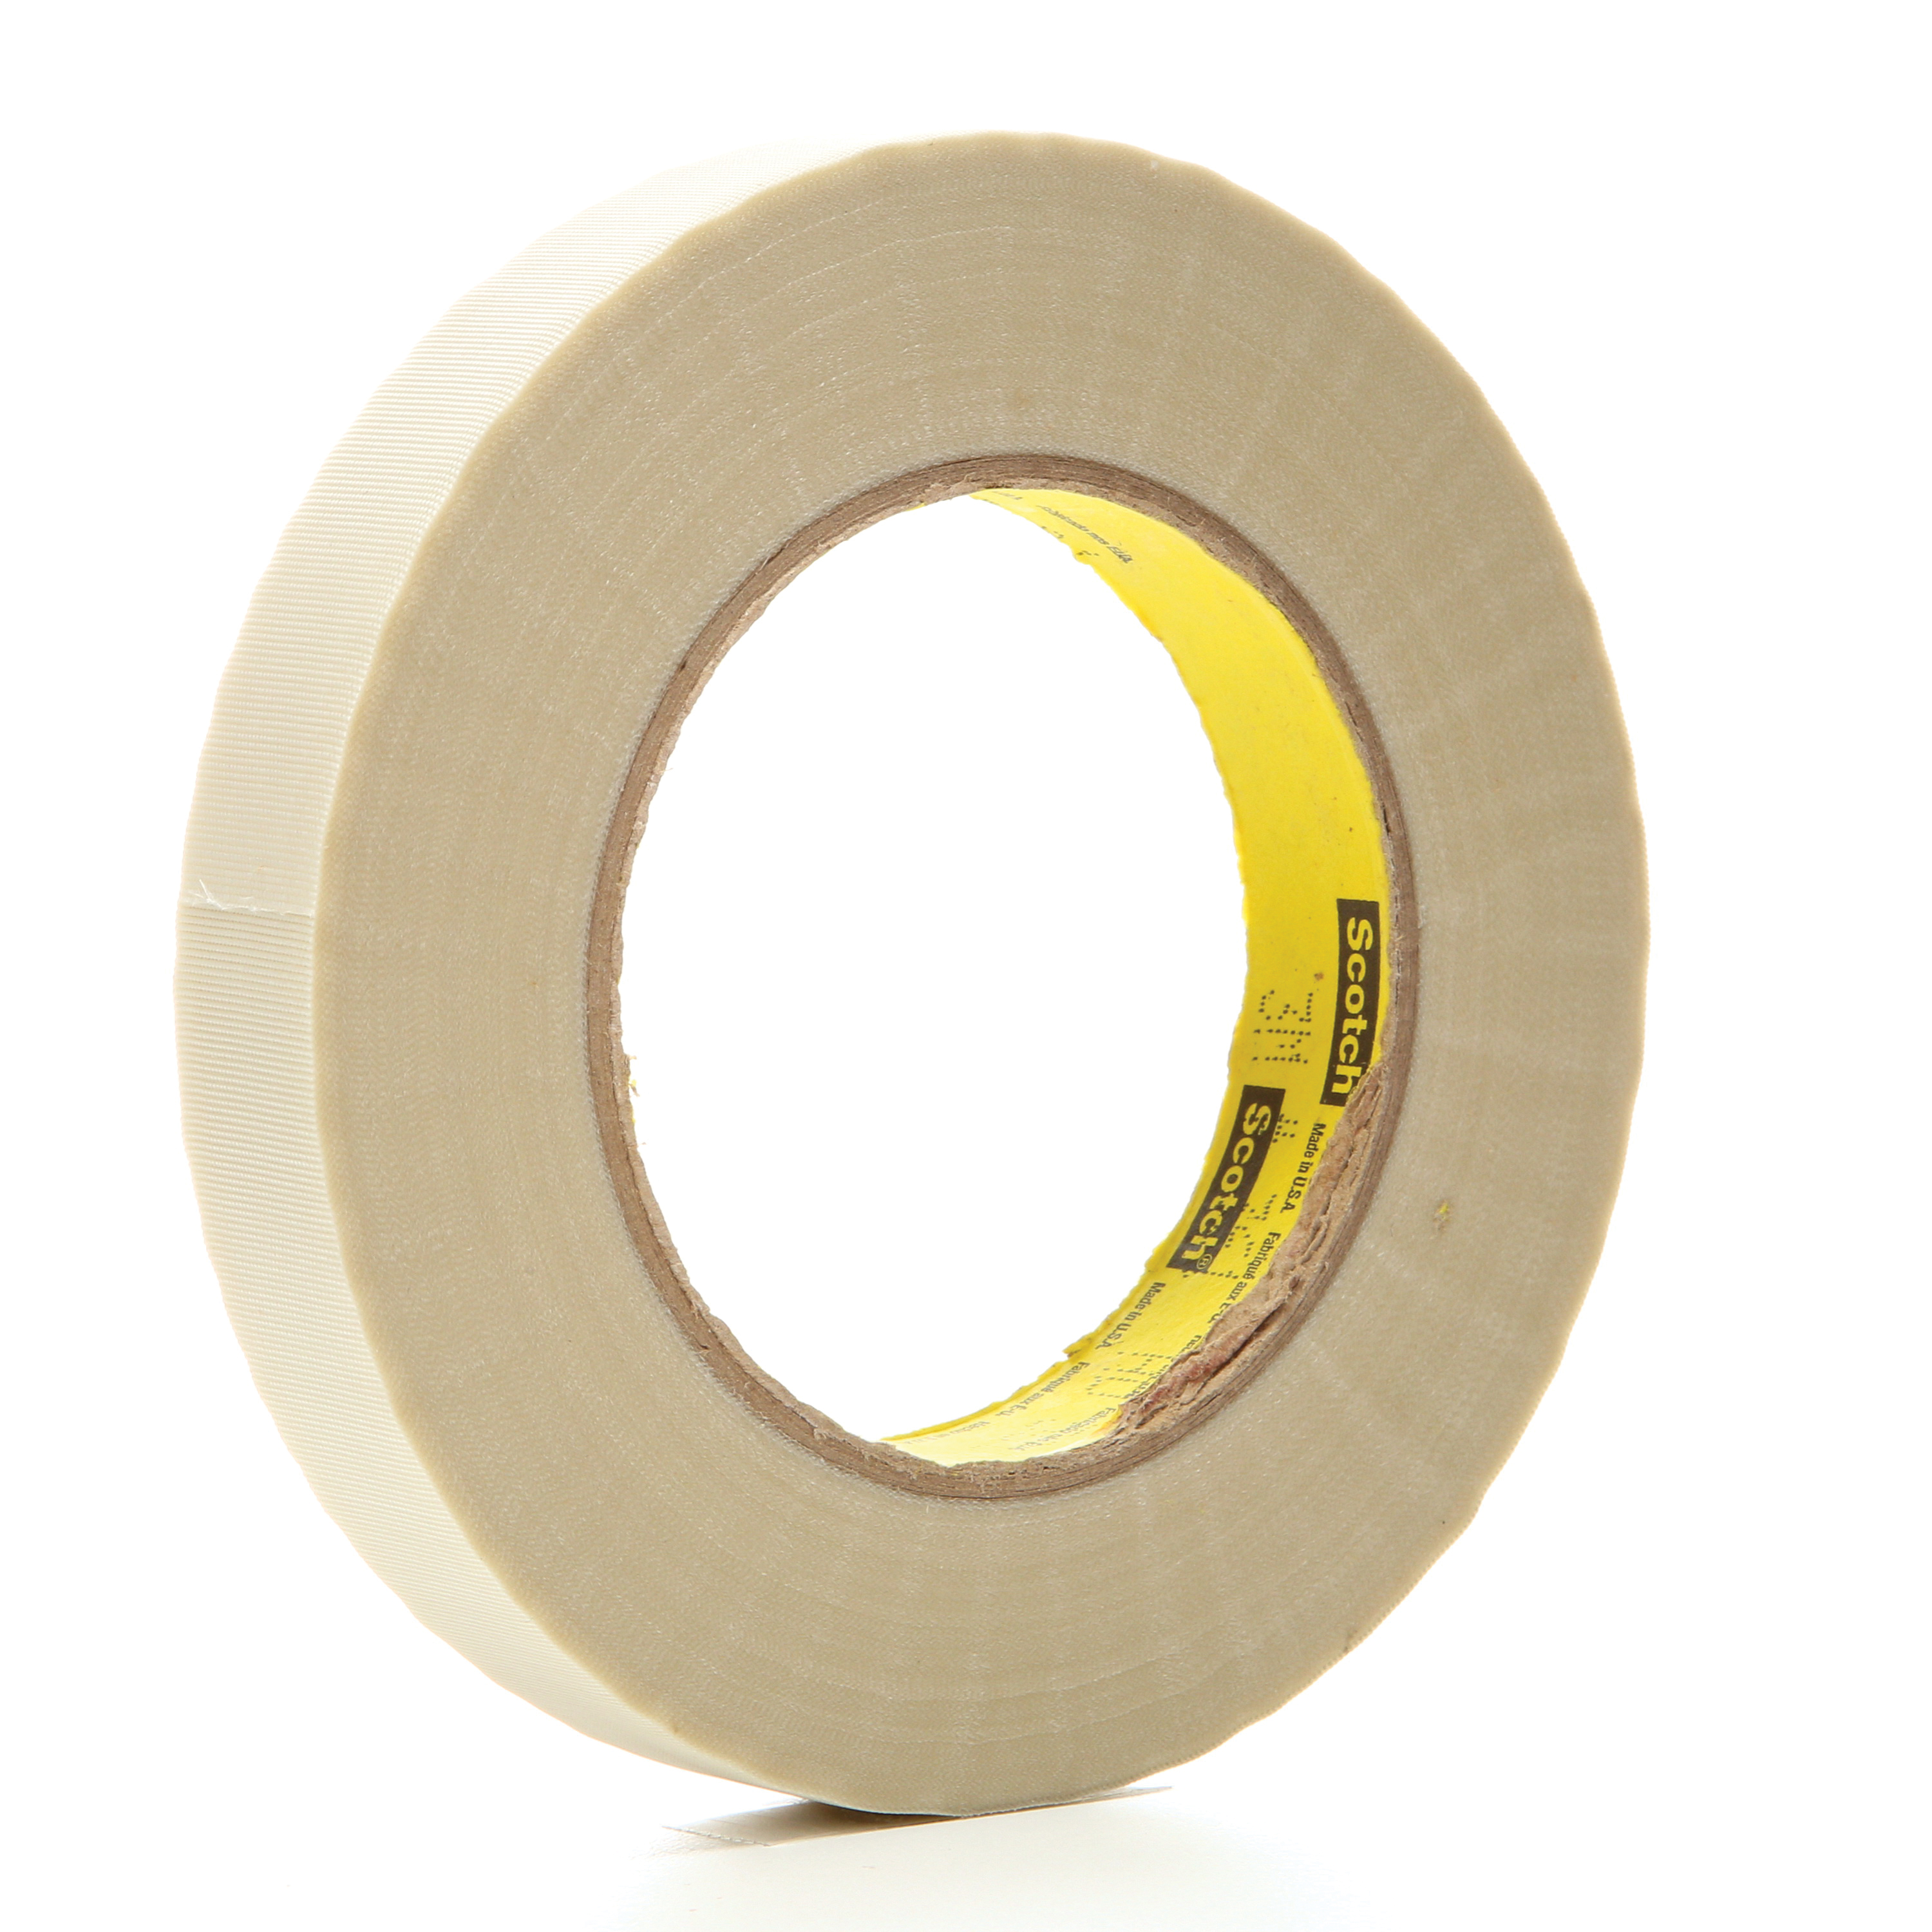 3M™ 021200-03016 Cloth Tape, 60 yd L x 3/4 in W, 6.4 mil THK, Silicon Adhesive, Glass Cloth Backing, White